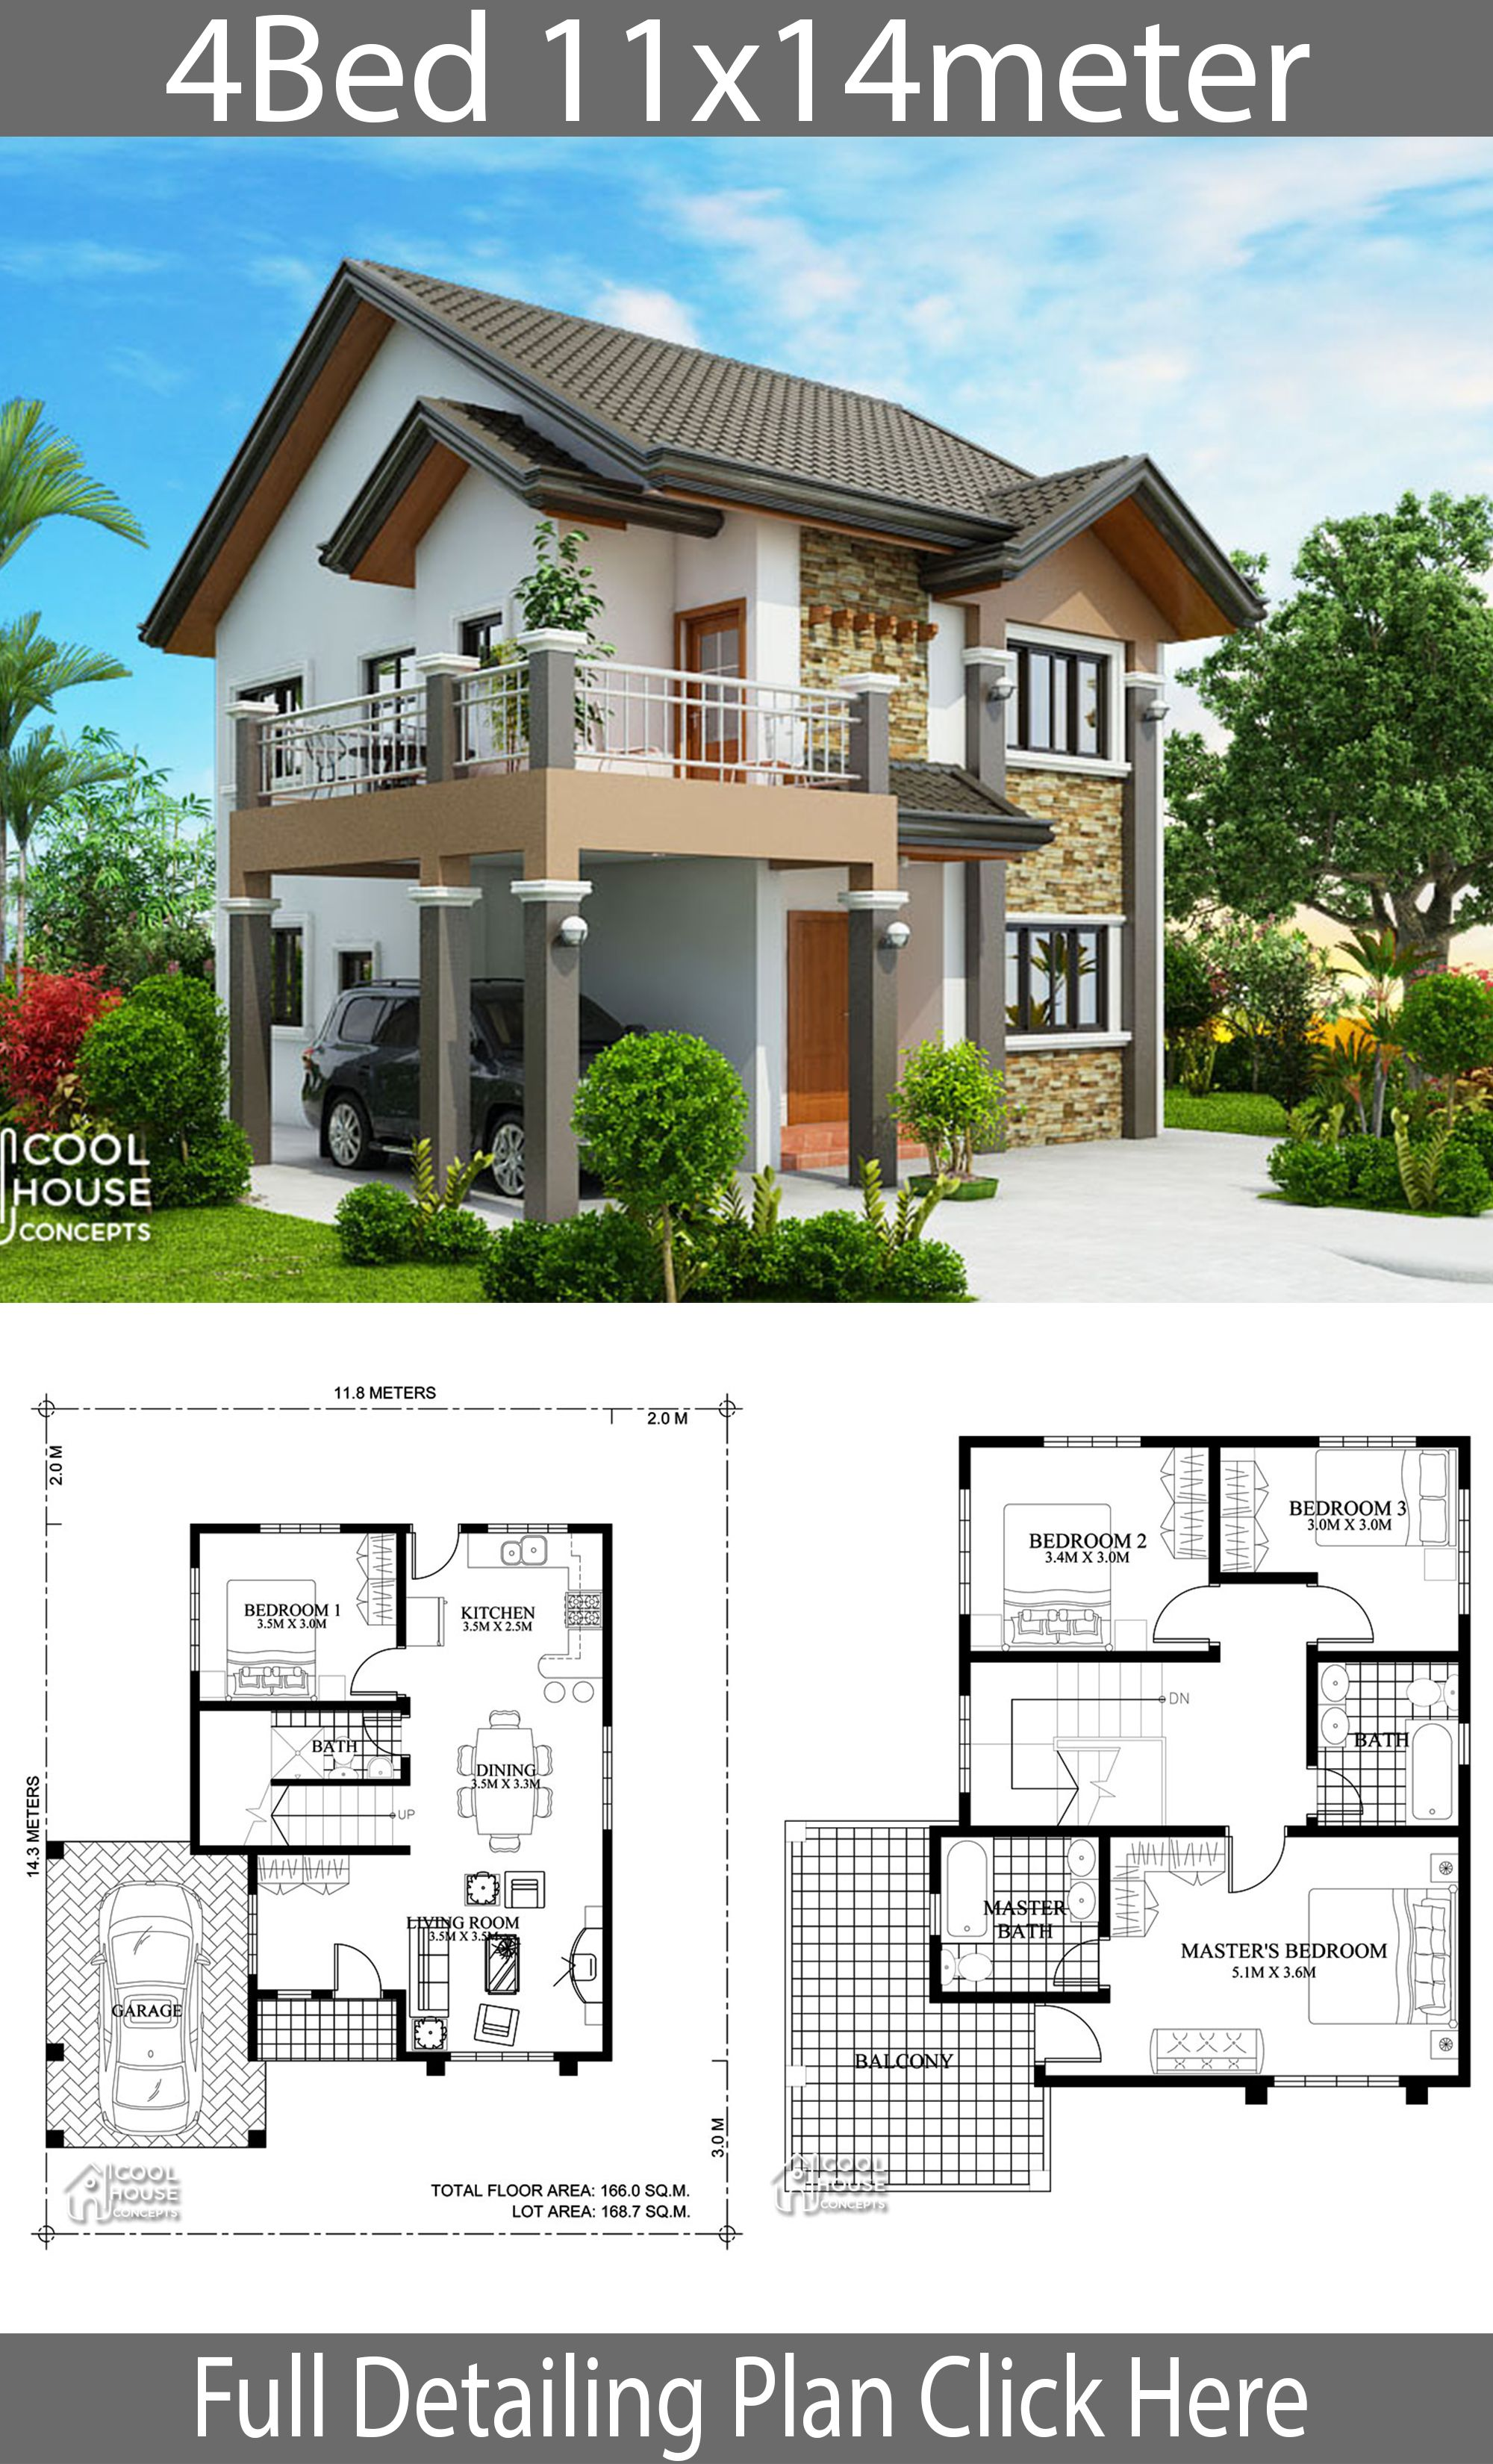 Home design plan 11x14m with 4 bedrooms | Cool house ...